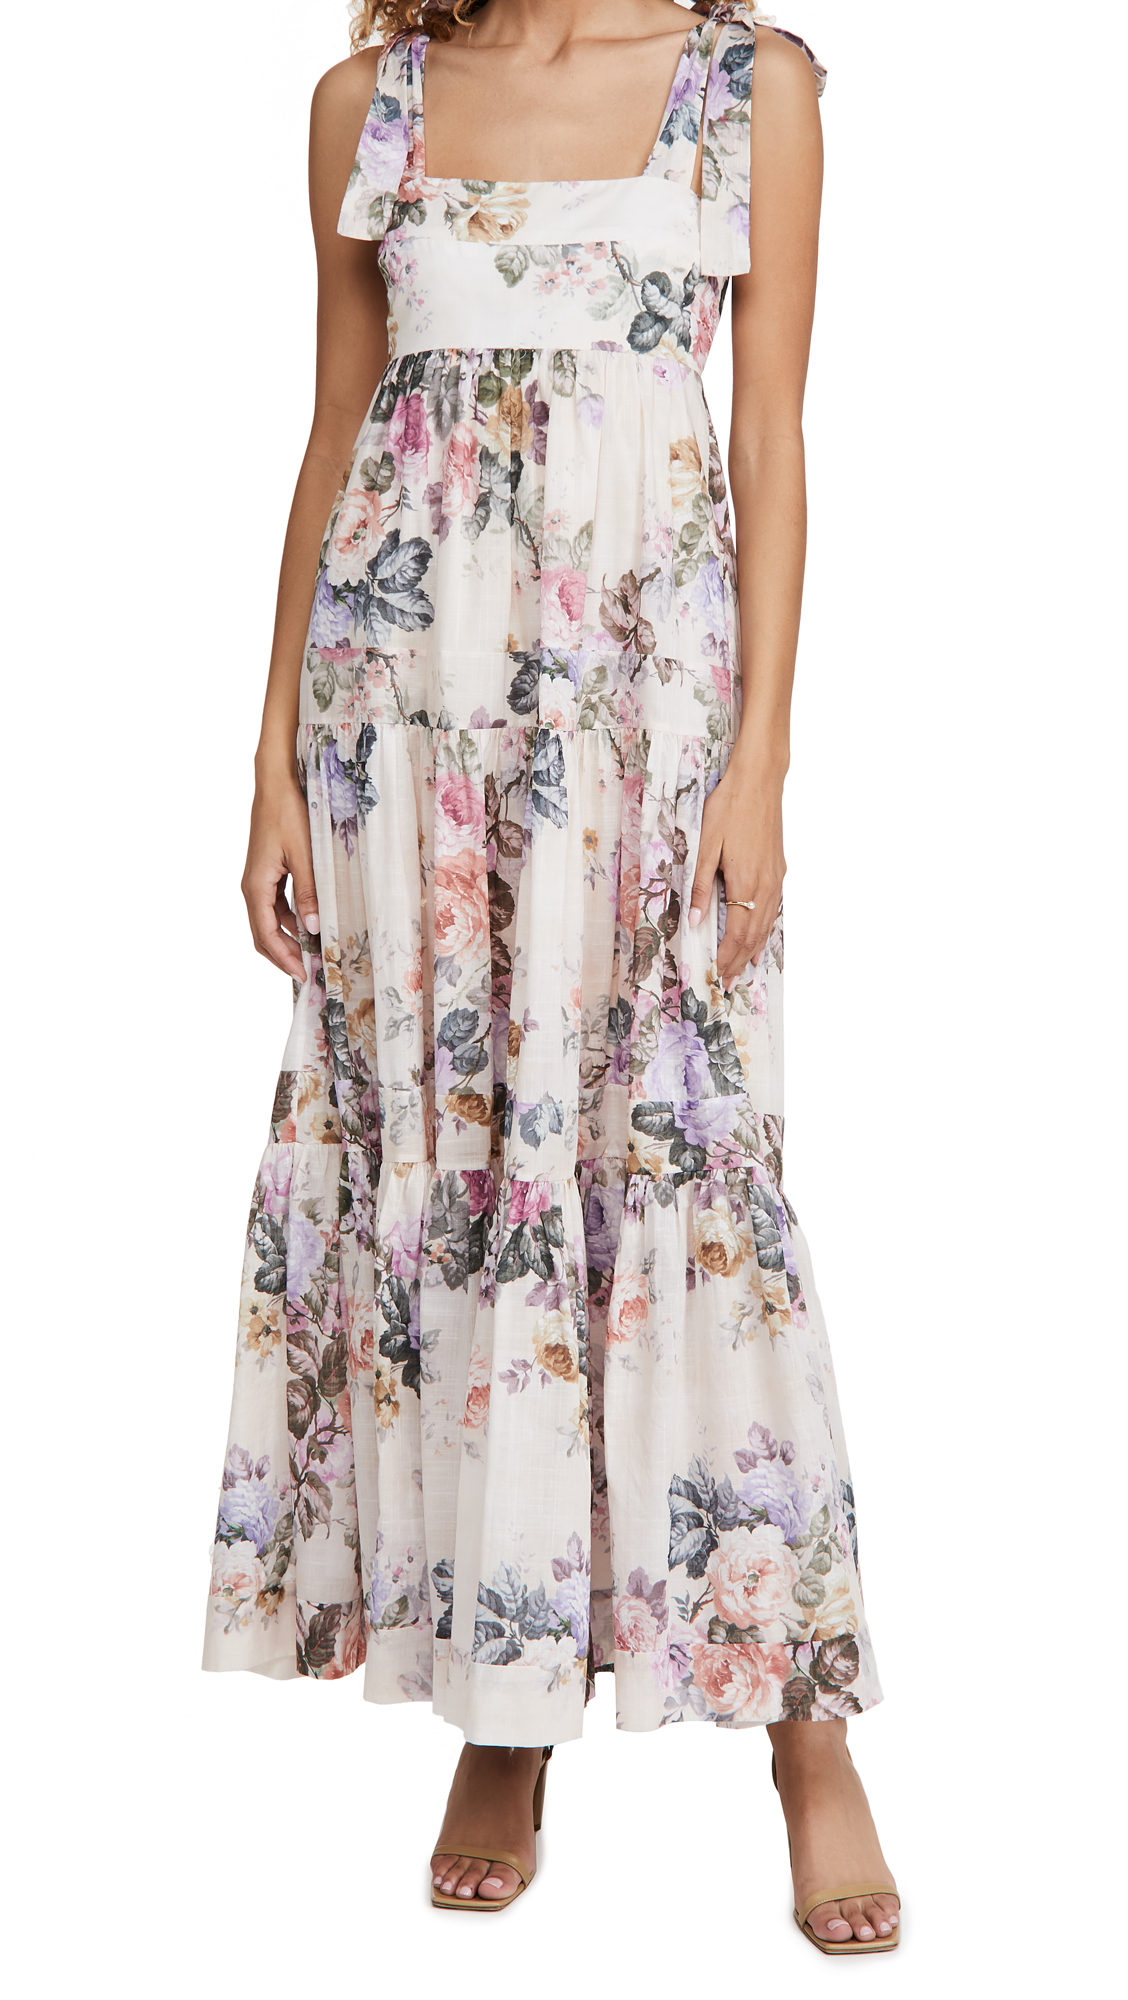 Zimmermann Brighton Tie Shoulder Dress